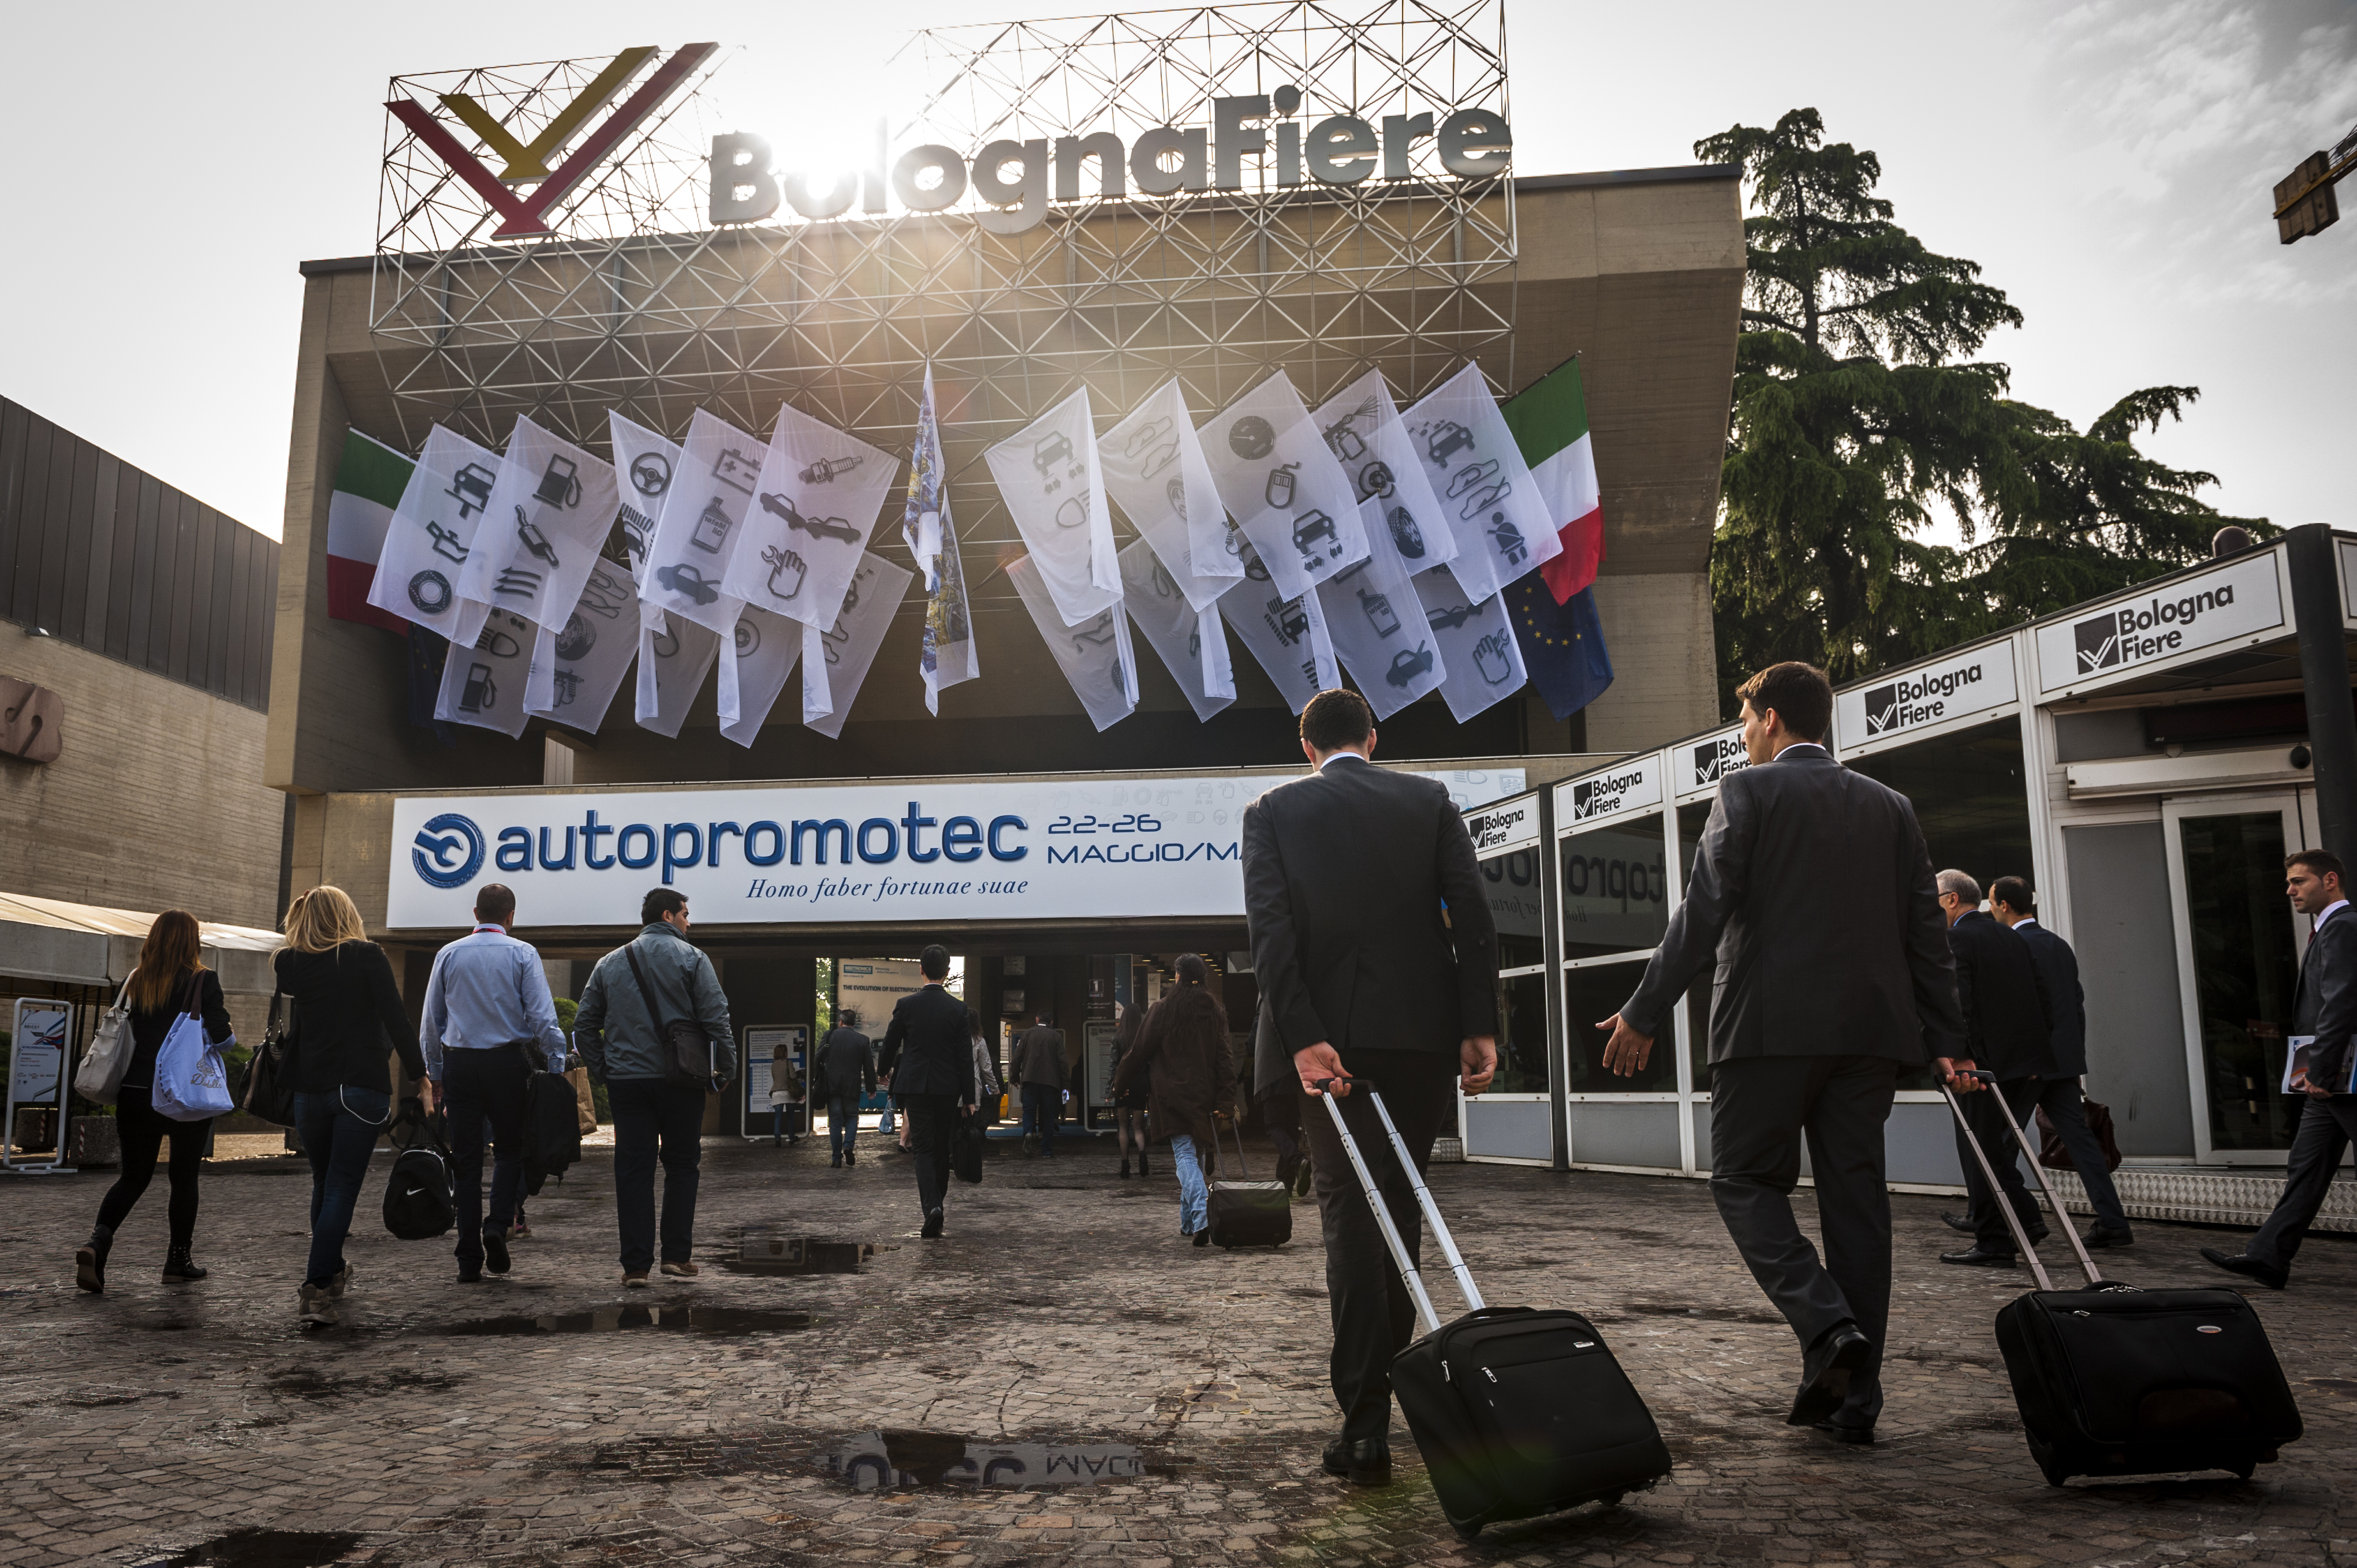 2013 Autopromotec: Success shows in the numbers